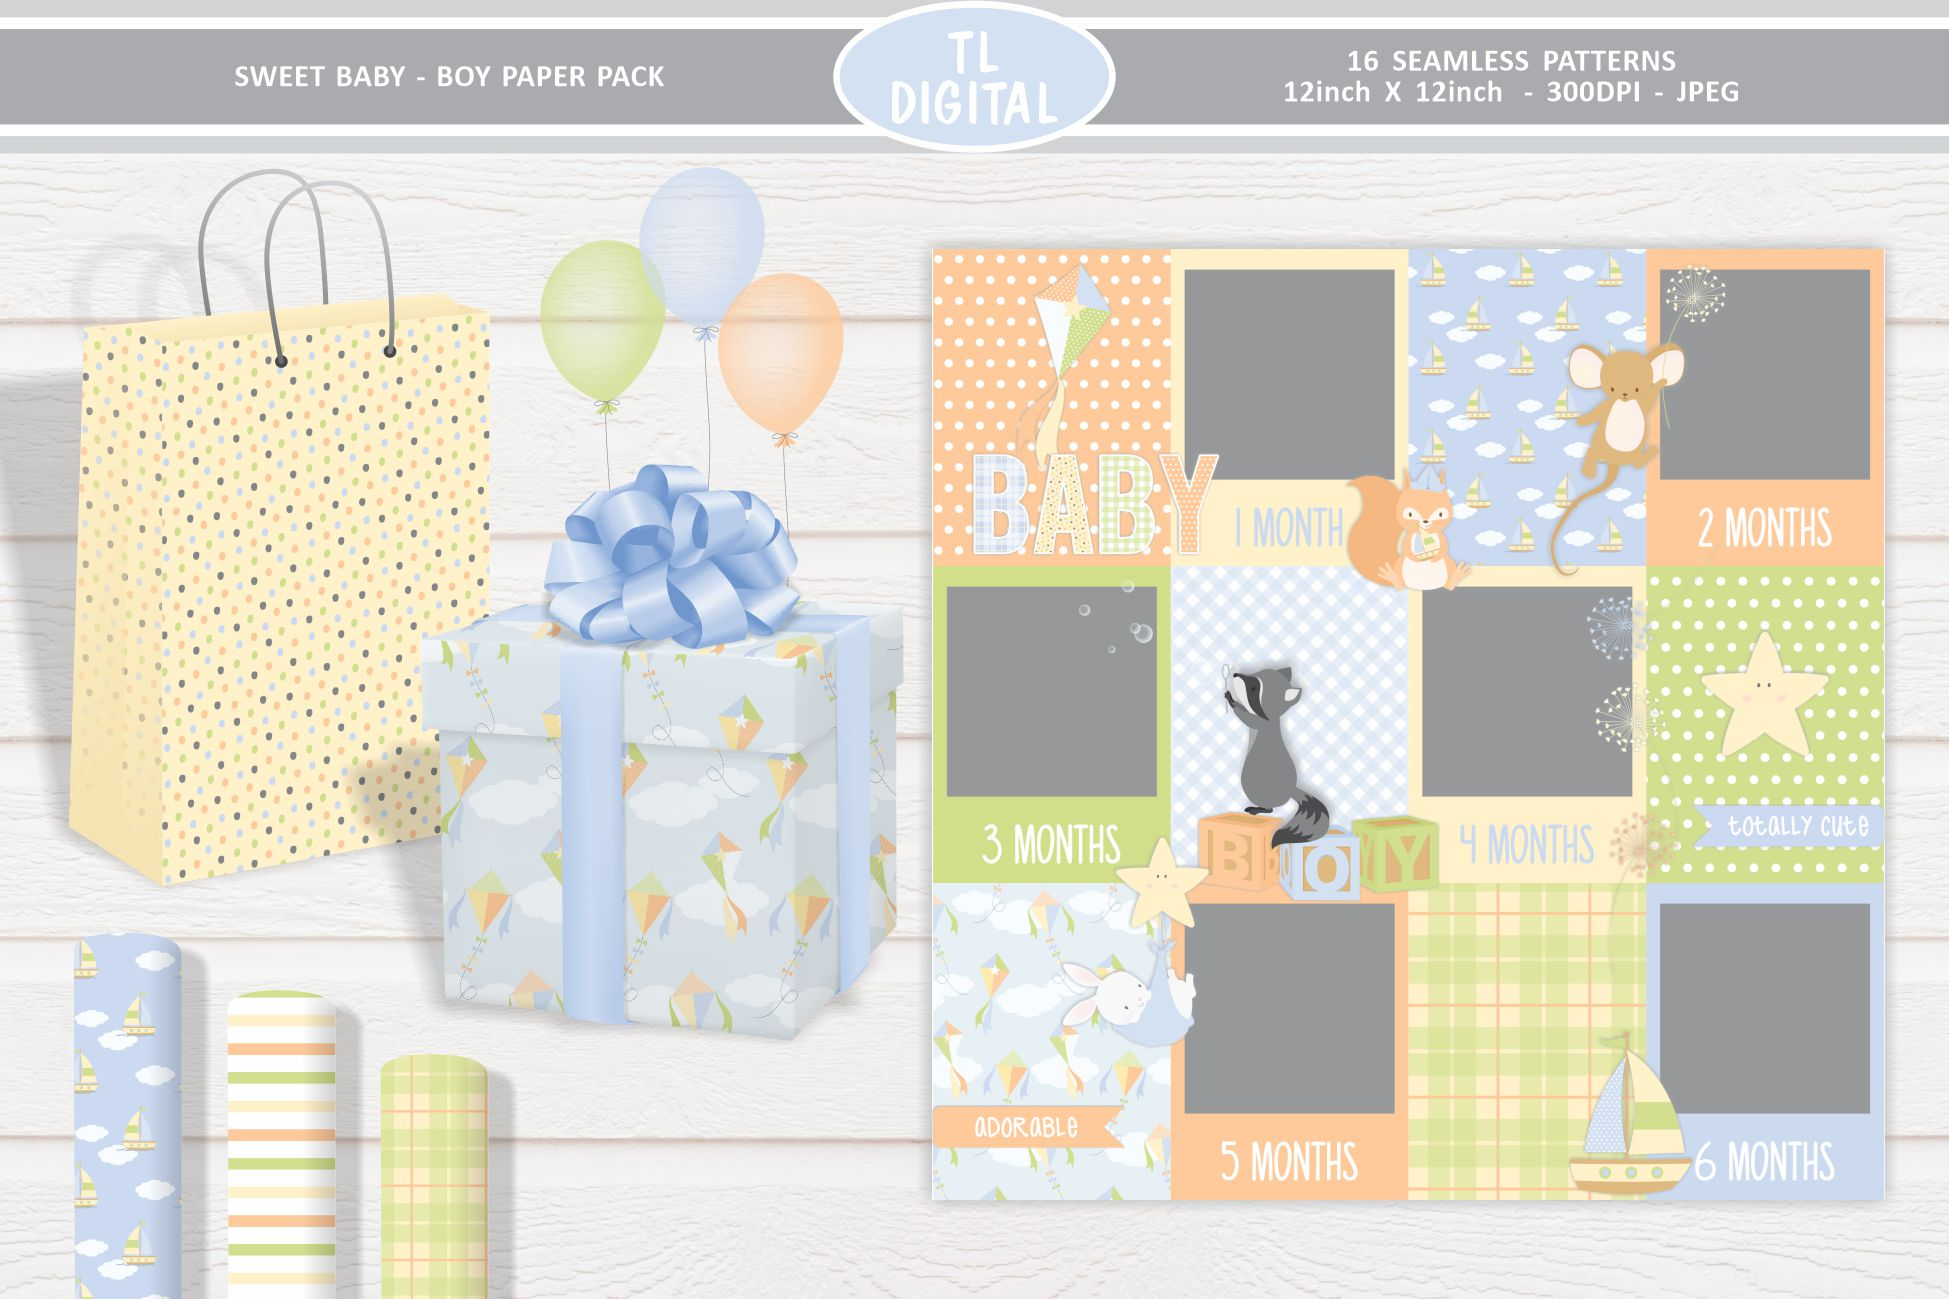 Sweet Baby Boy Paper Pack - 12 Seamless Patterns example image 2